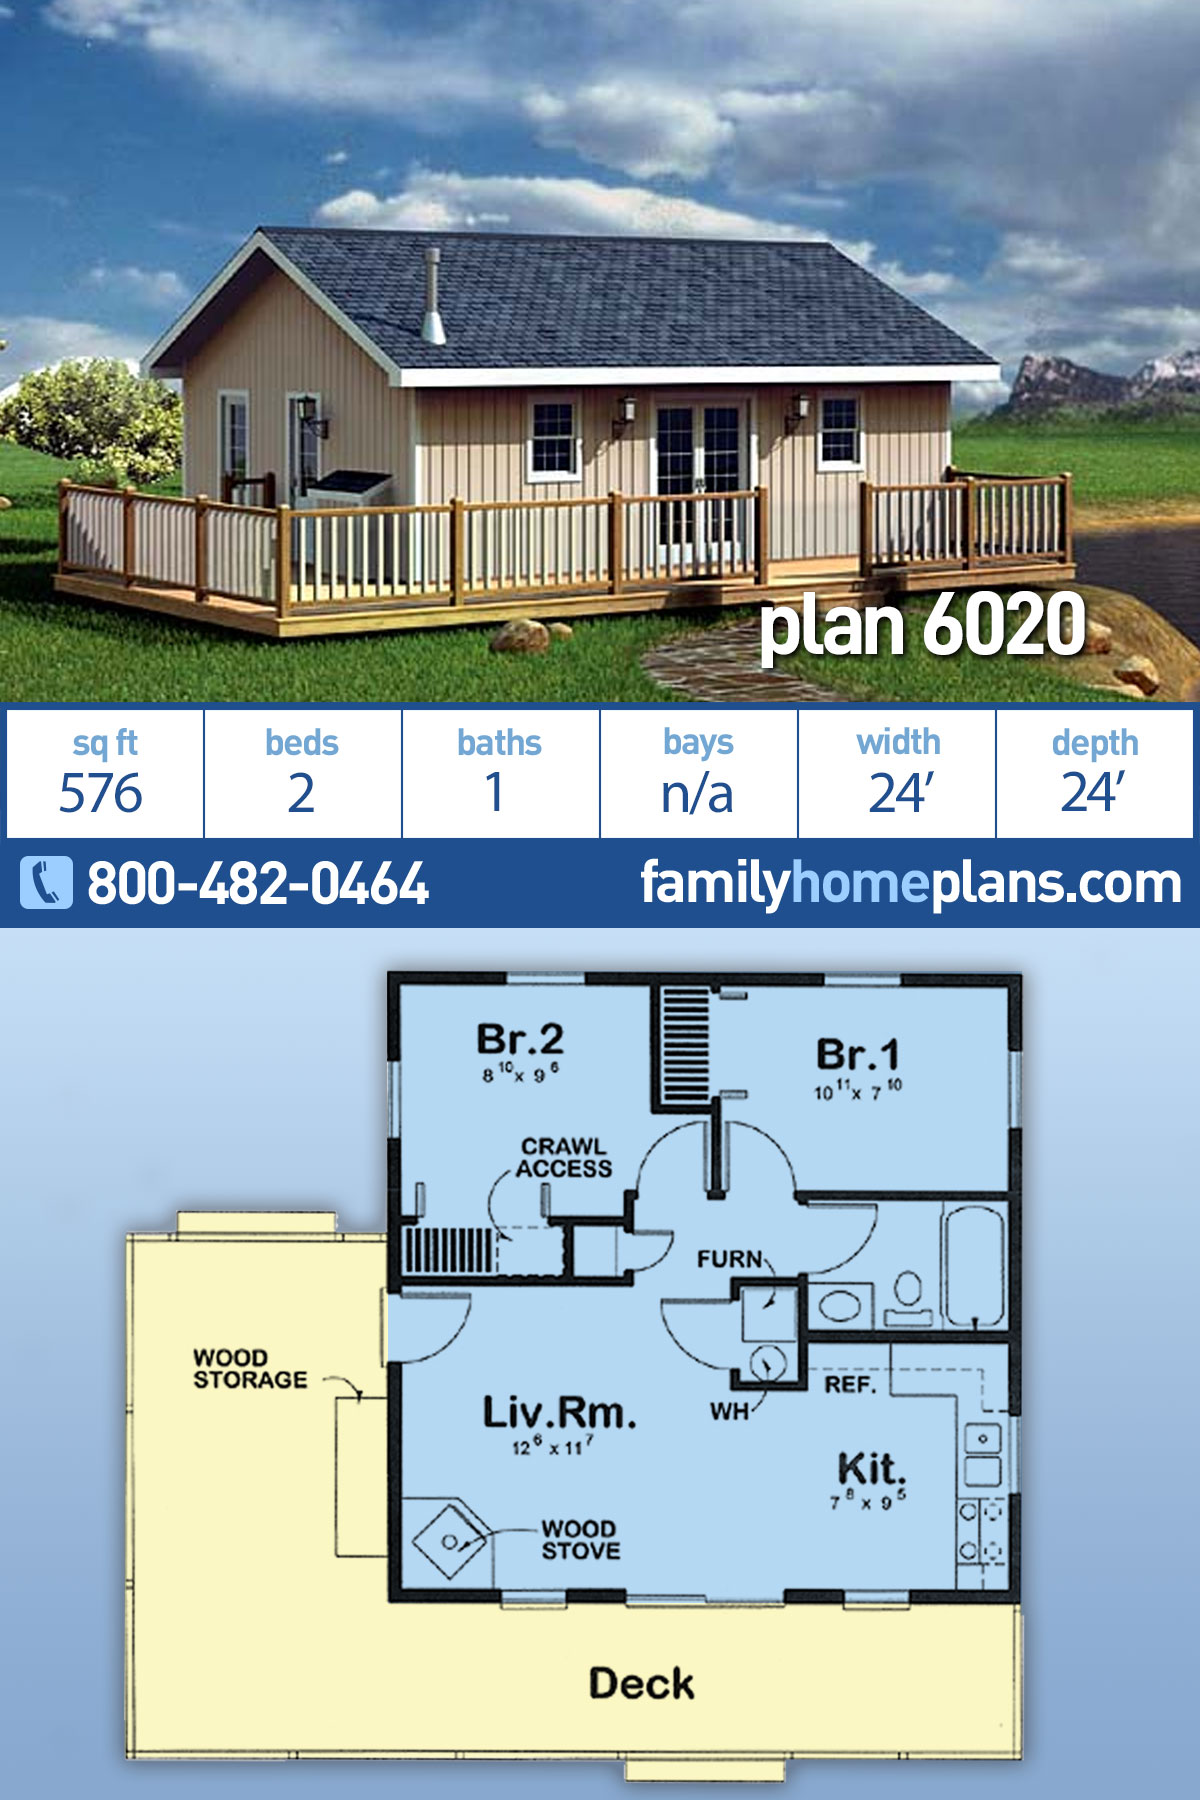 Cabin, Traditional House Plan 6020 with 2 Beds, 1 Baths